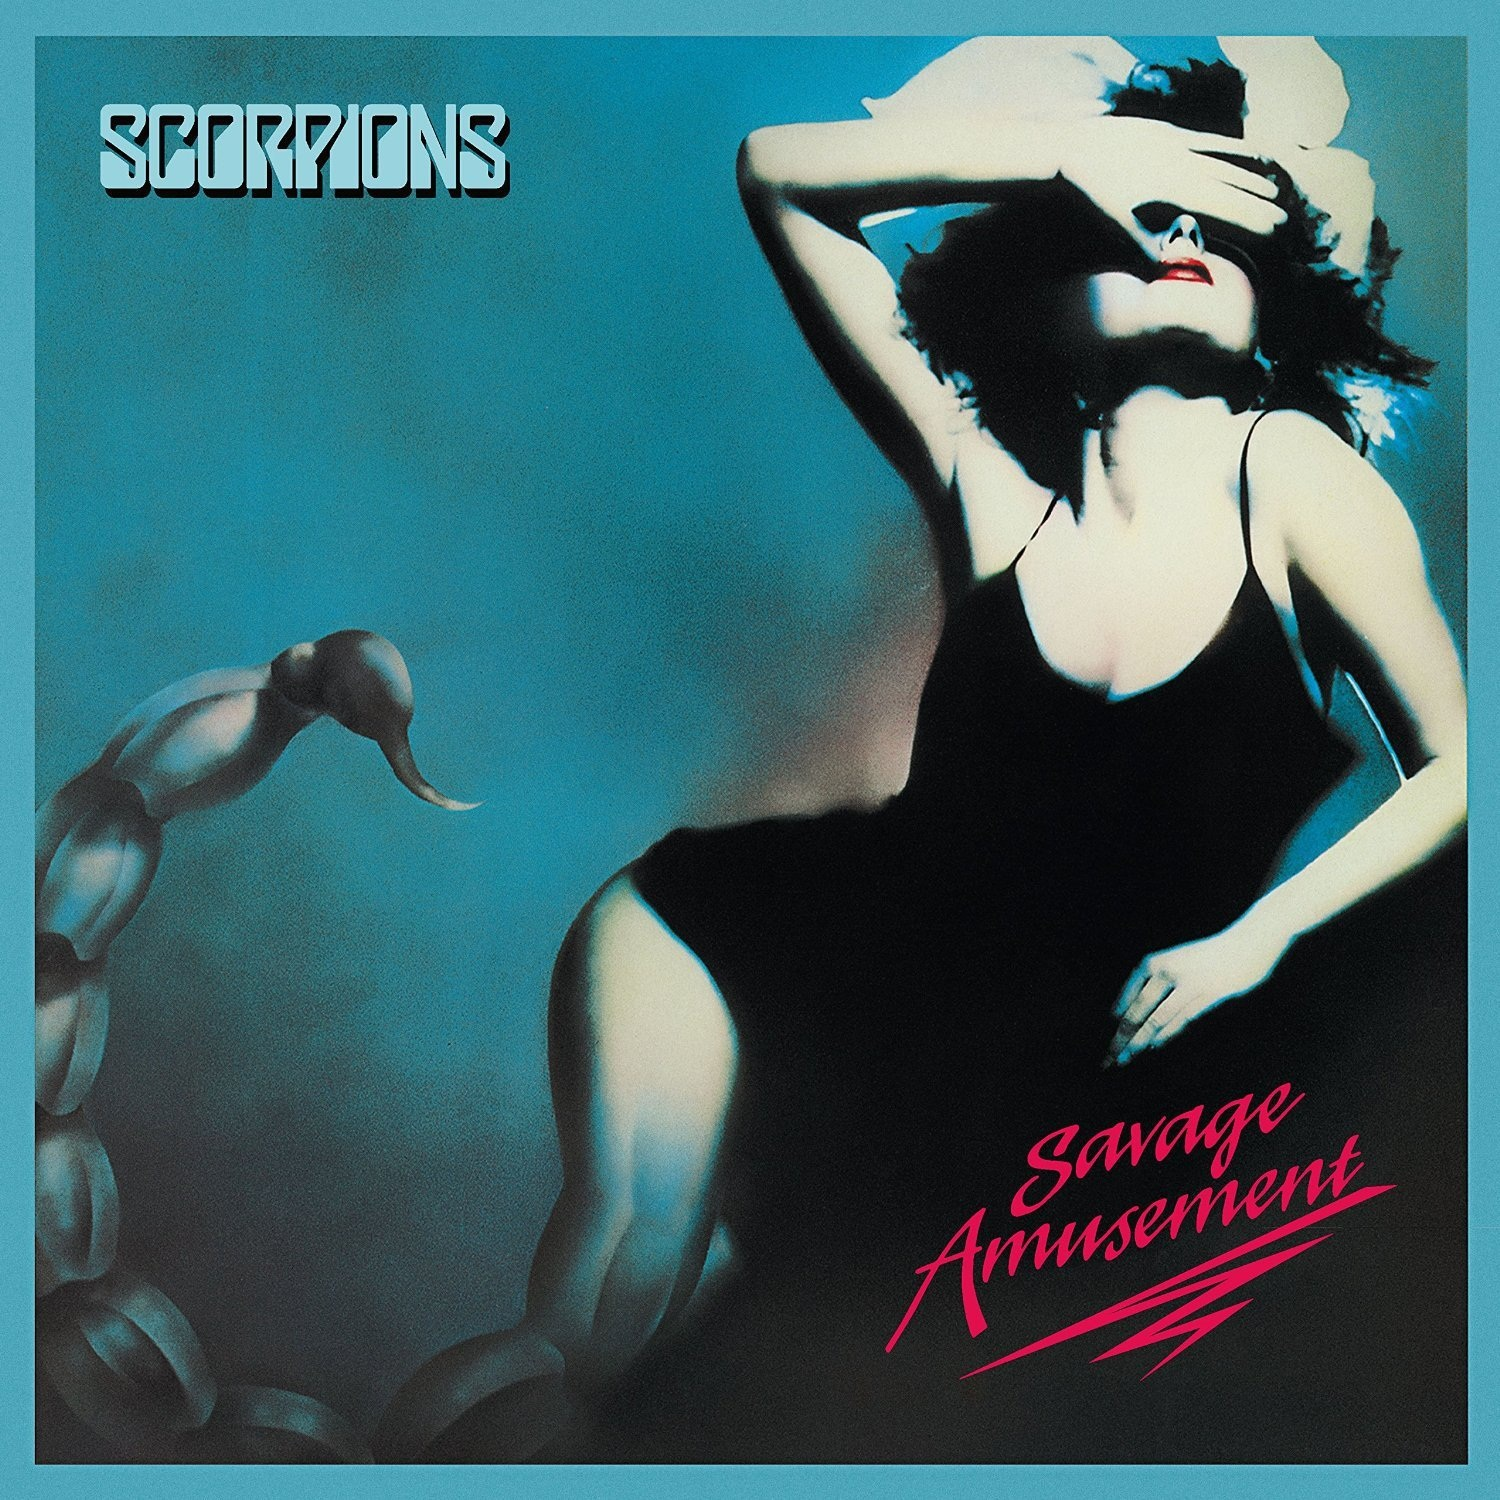 Scorpions: Savage Amusement (CD + DVD) платье fred perry fred perry fr006ewopv53